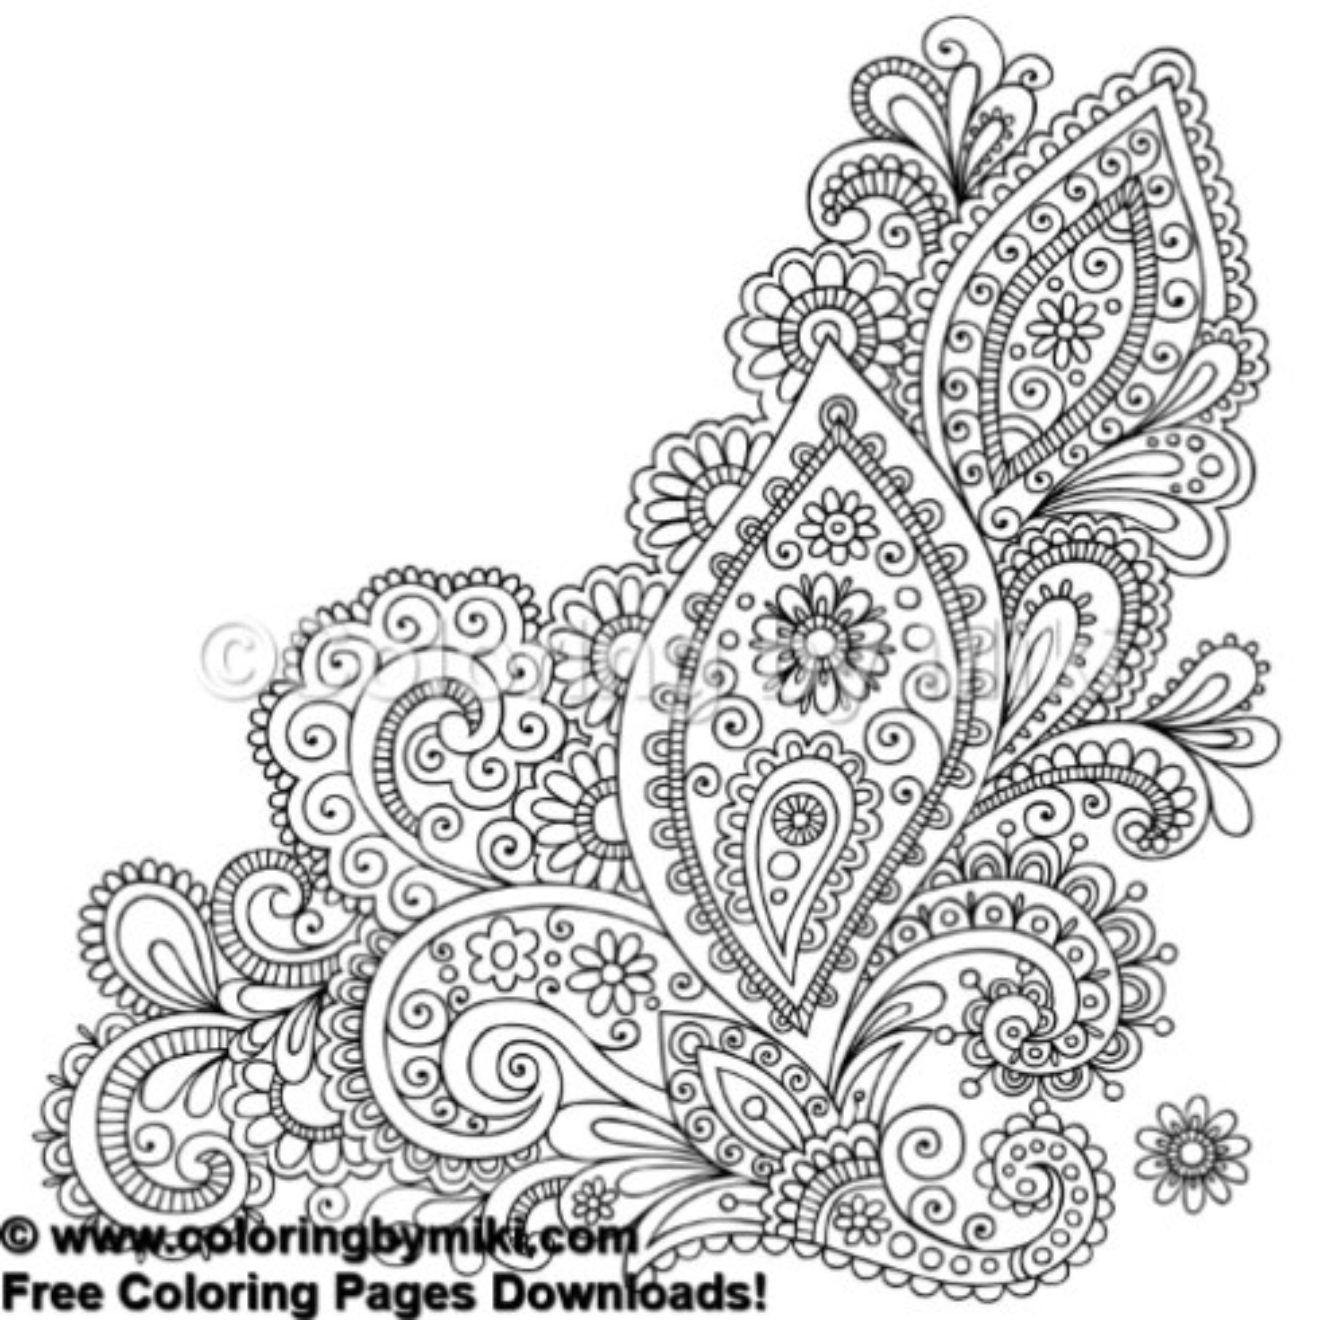 Henna Tattoo Design Coloring Page #654 | Tribal - Free Coloring - Free Printable Henna Tattoo Designs